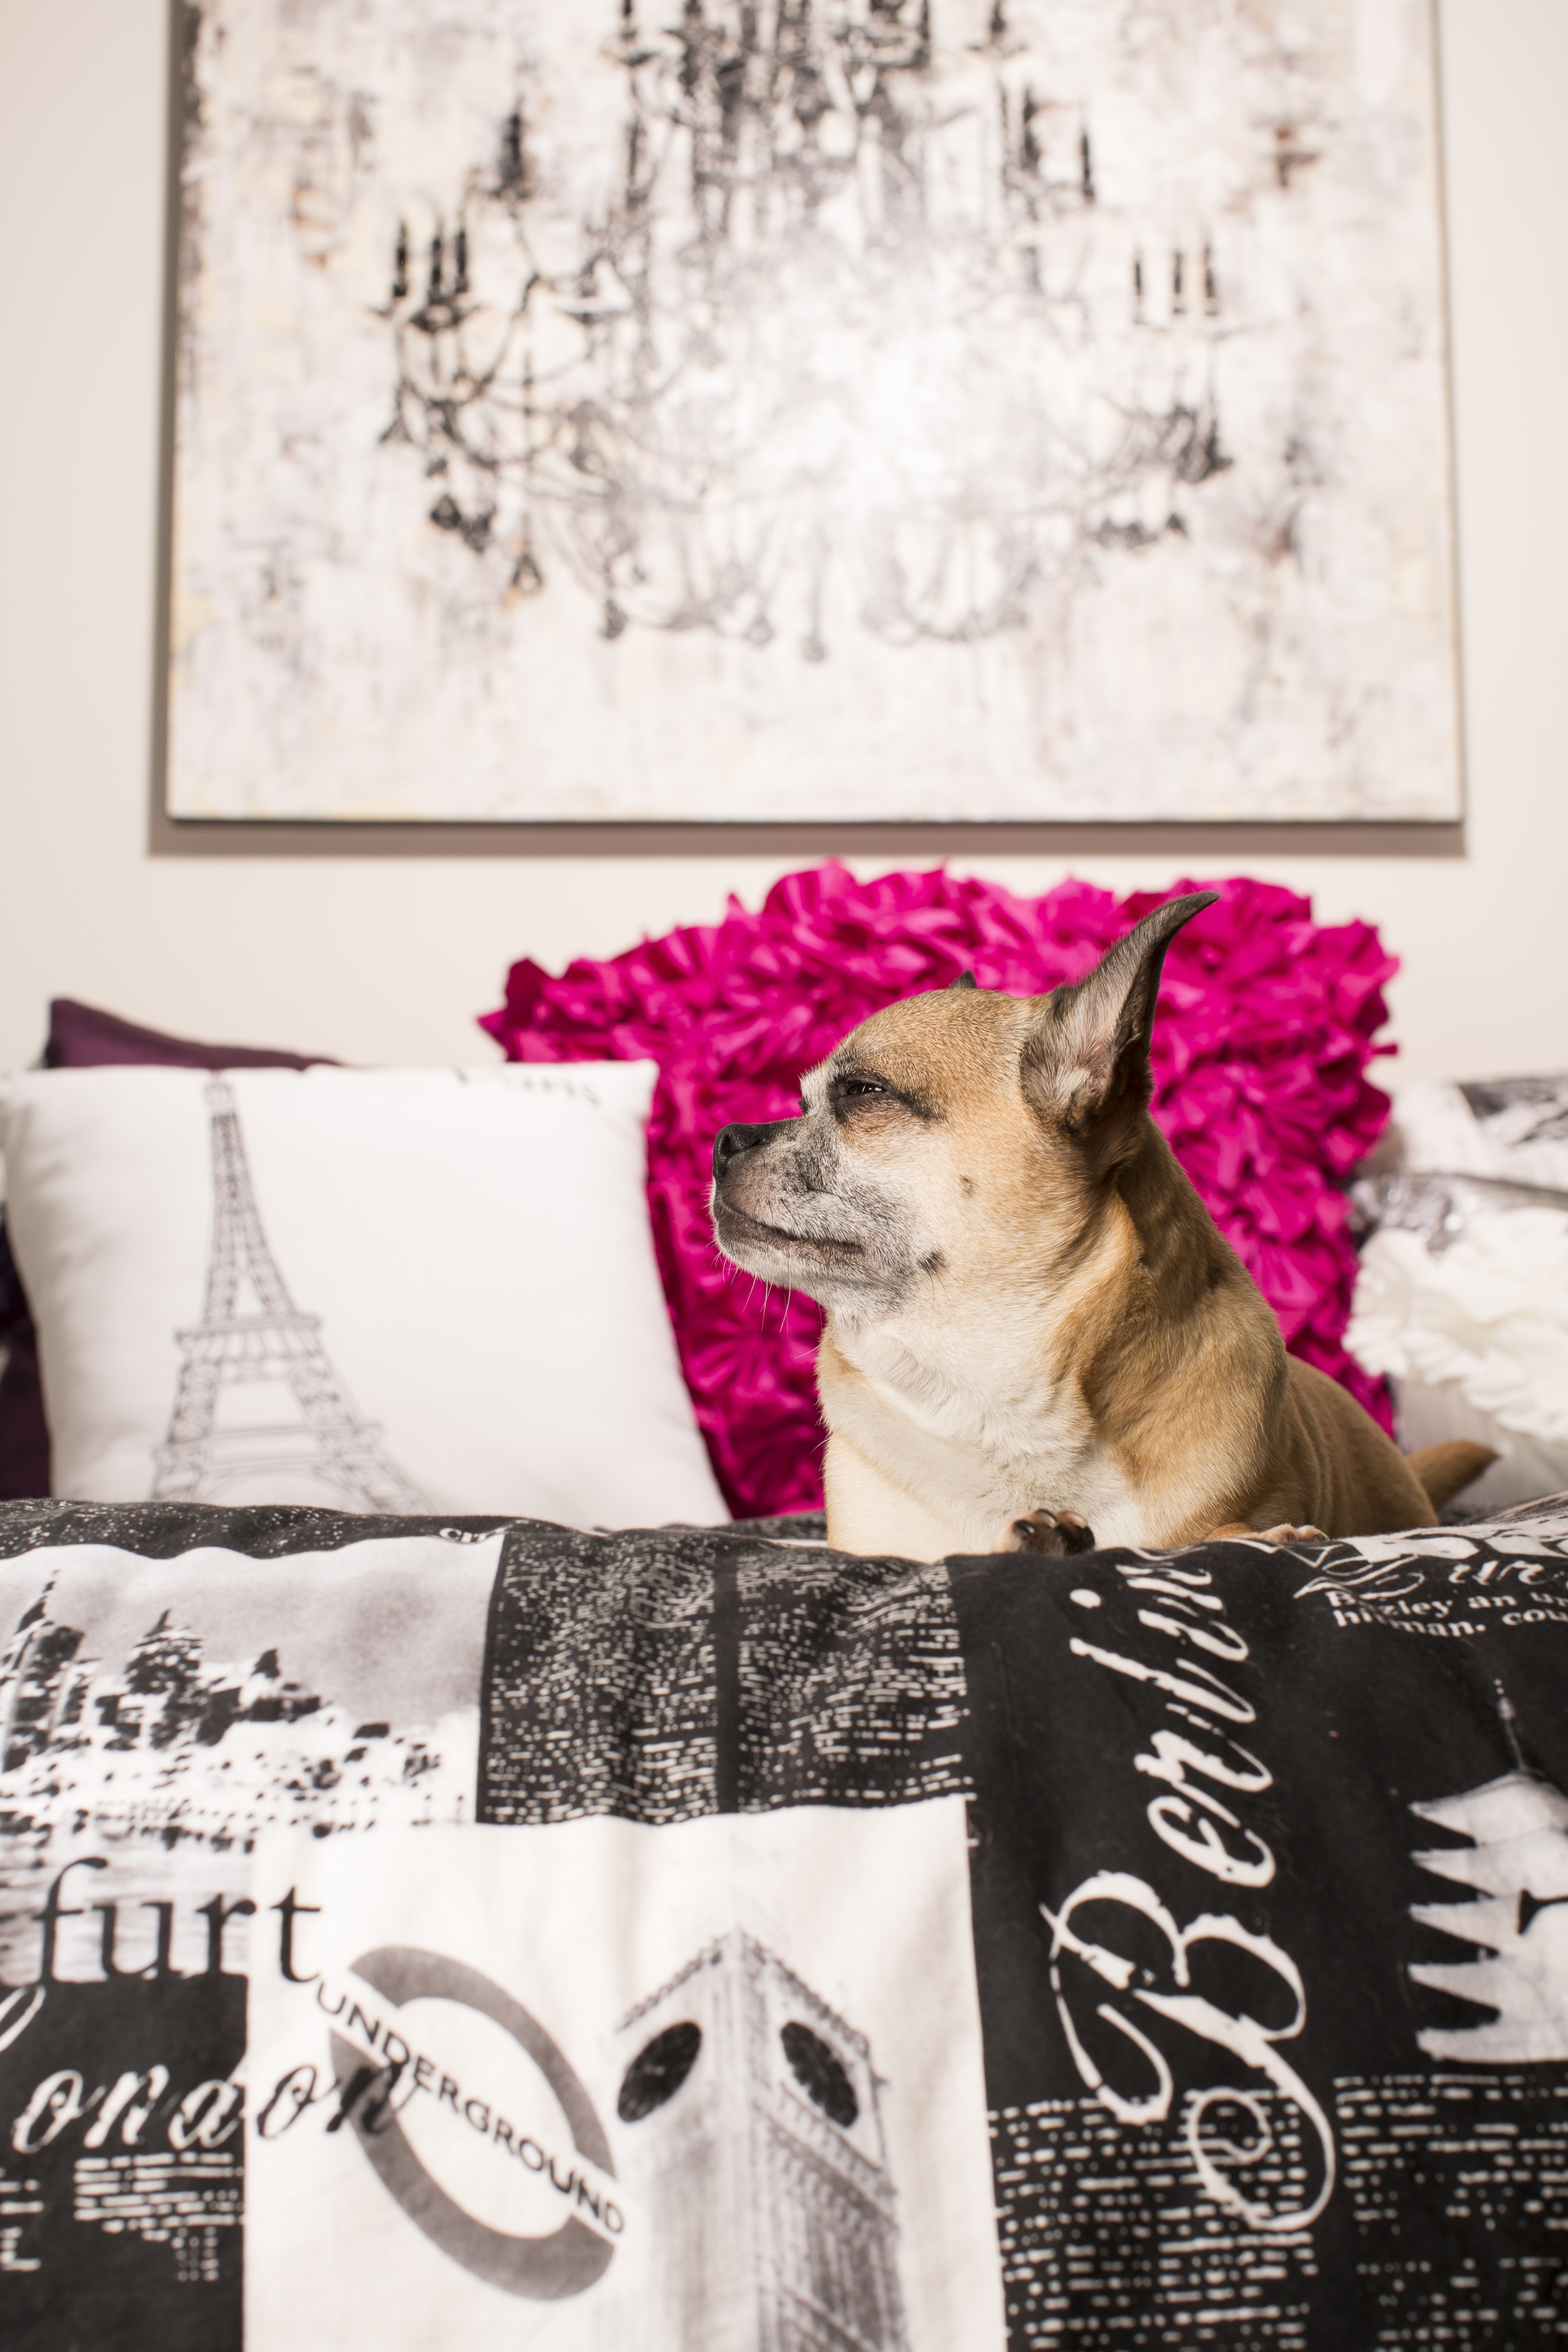 03 Chihuahua dog on location pet photography studio session paris industrial decor.jpg